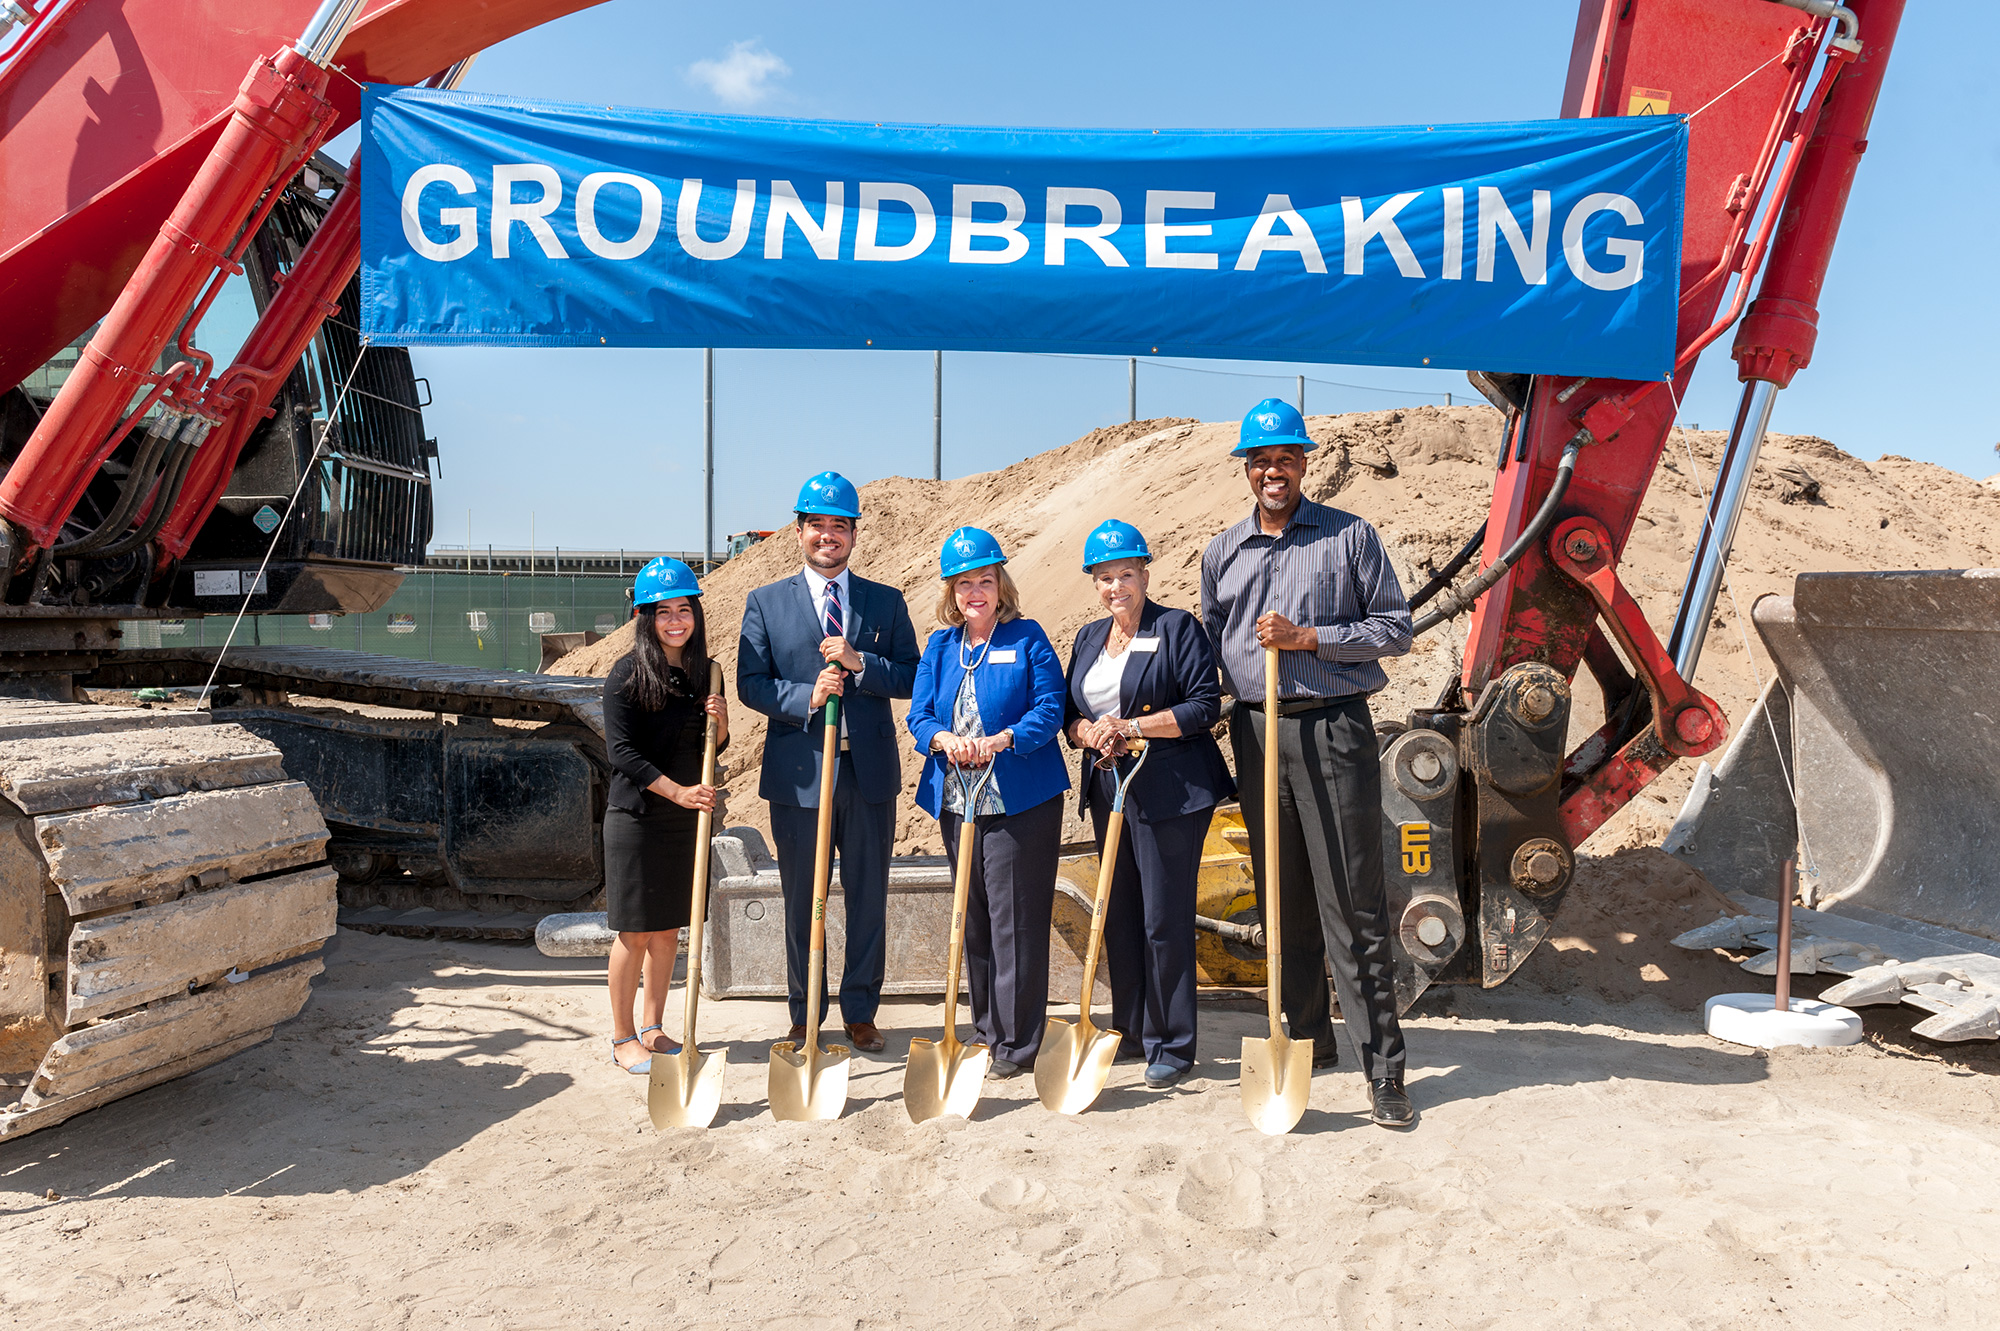 Pool Groundbreaking